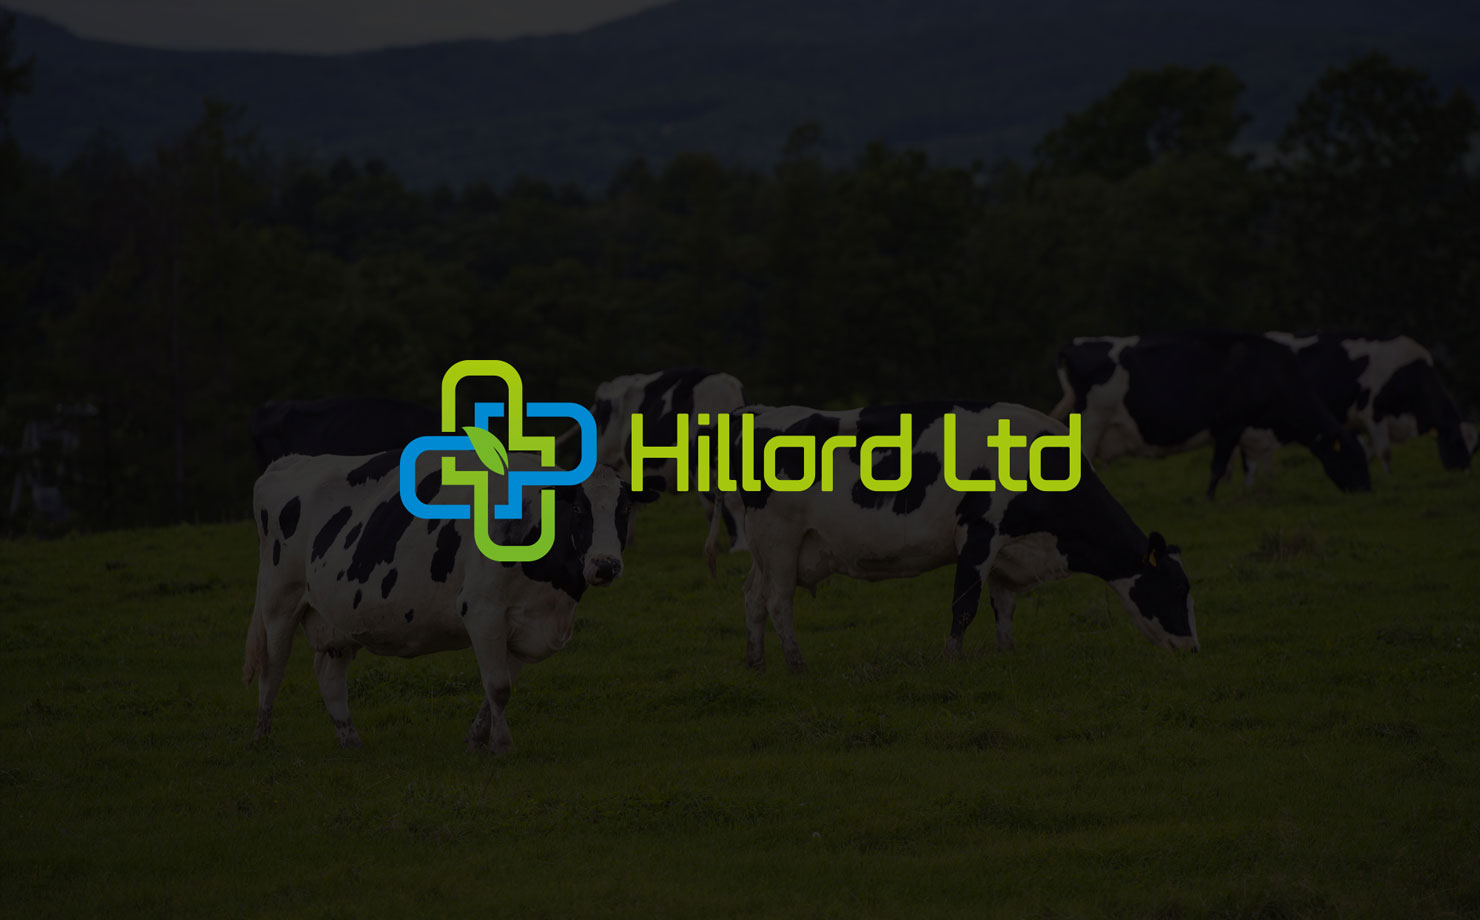 hillord1